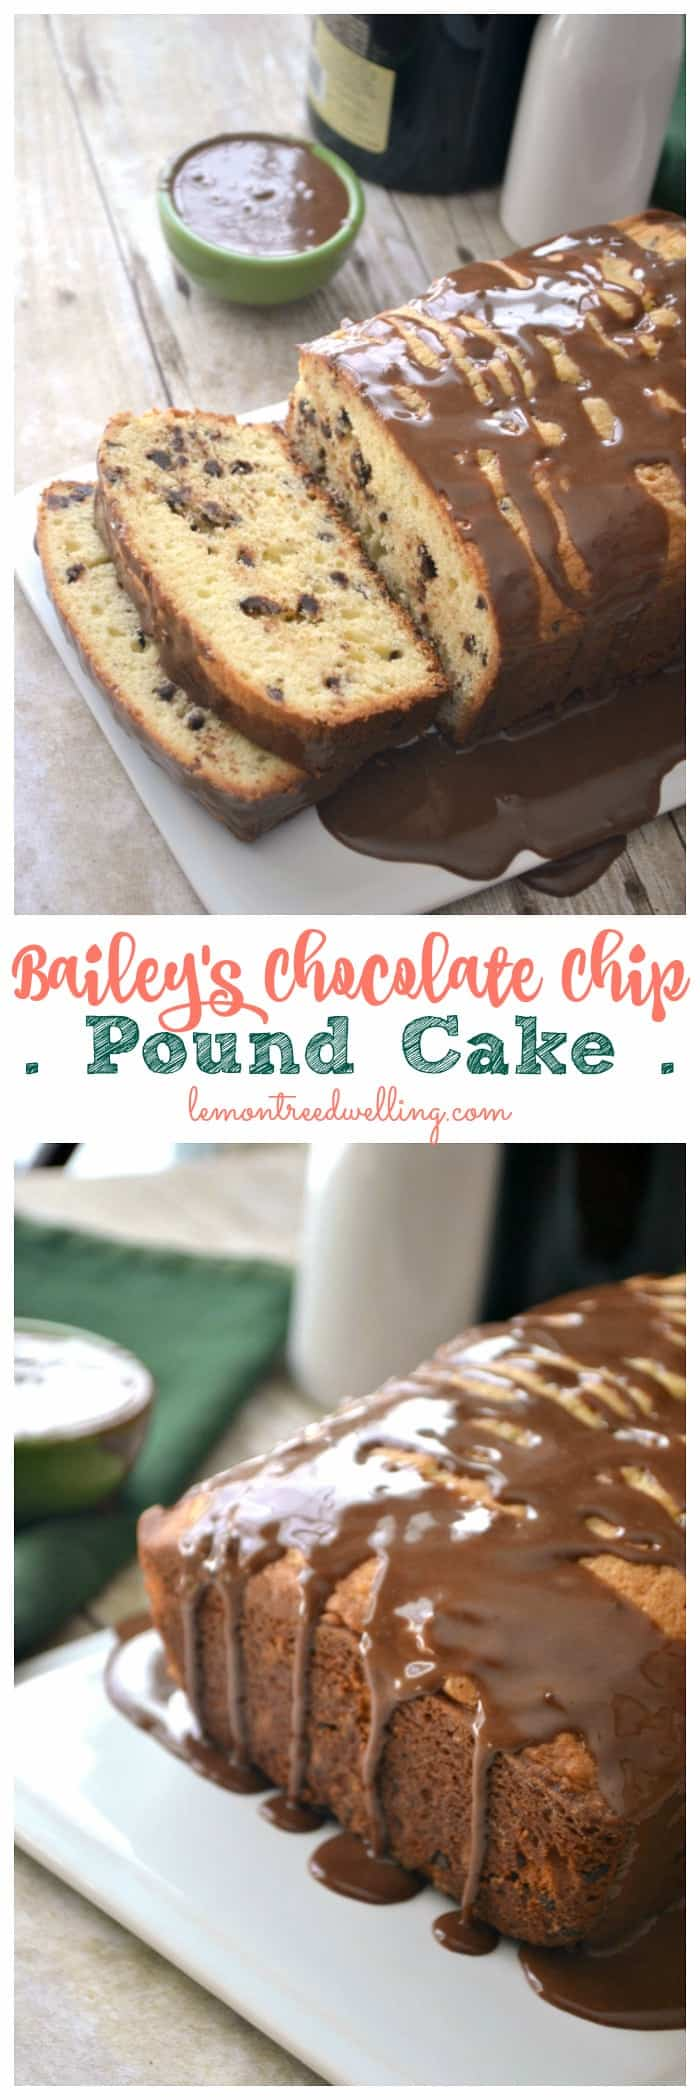 This Bailey's Chocolate Chip Pound Cake is flavored with chocolate chips and Bailey's Irish Cream, then drizzled with a chocolate Bailey's icing. Perfect for breakfast OR dessert!